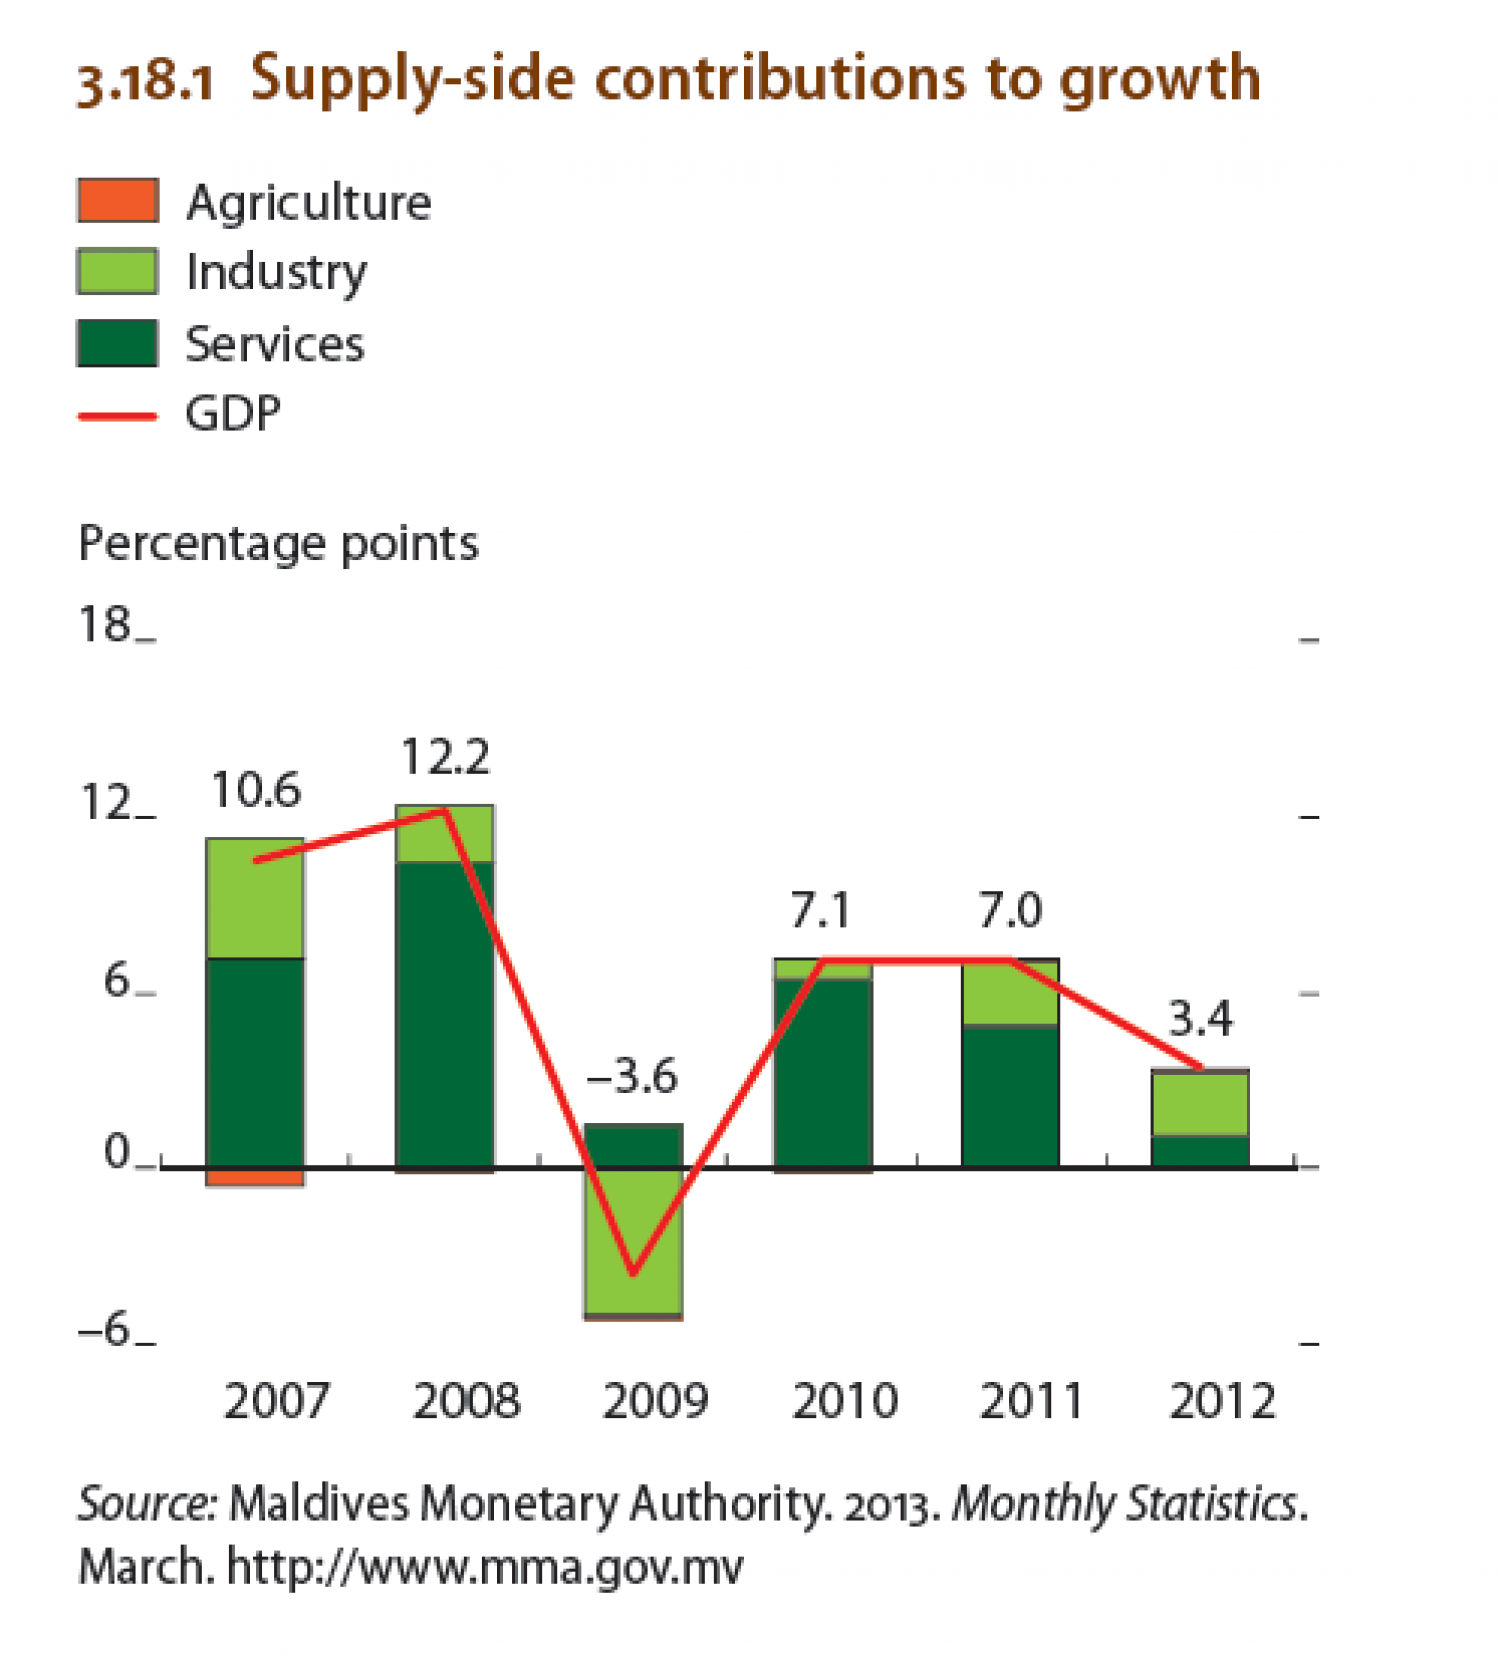 Maldives : Supply-side contributions to growth Infographic